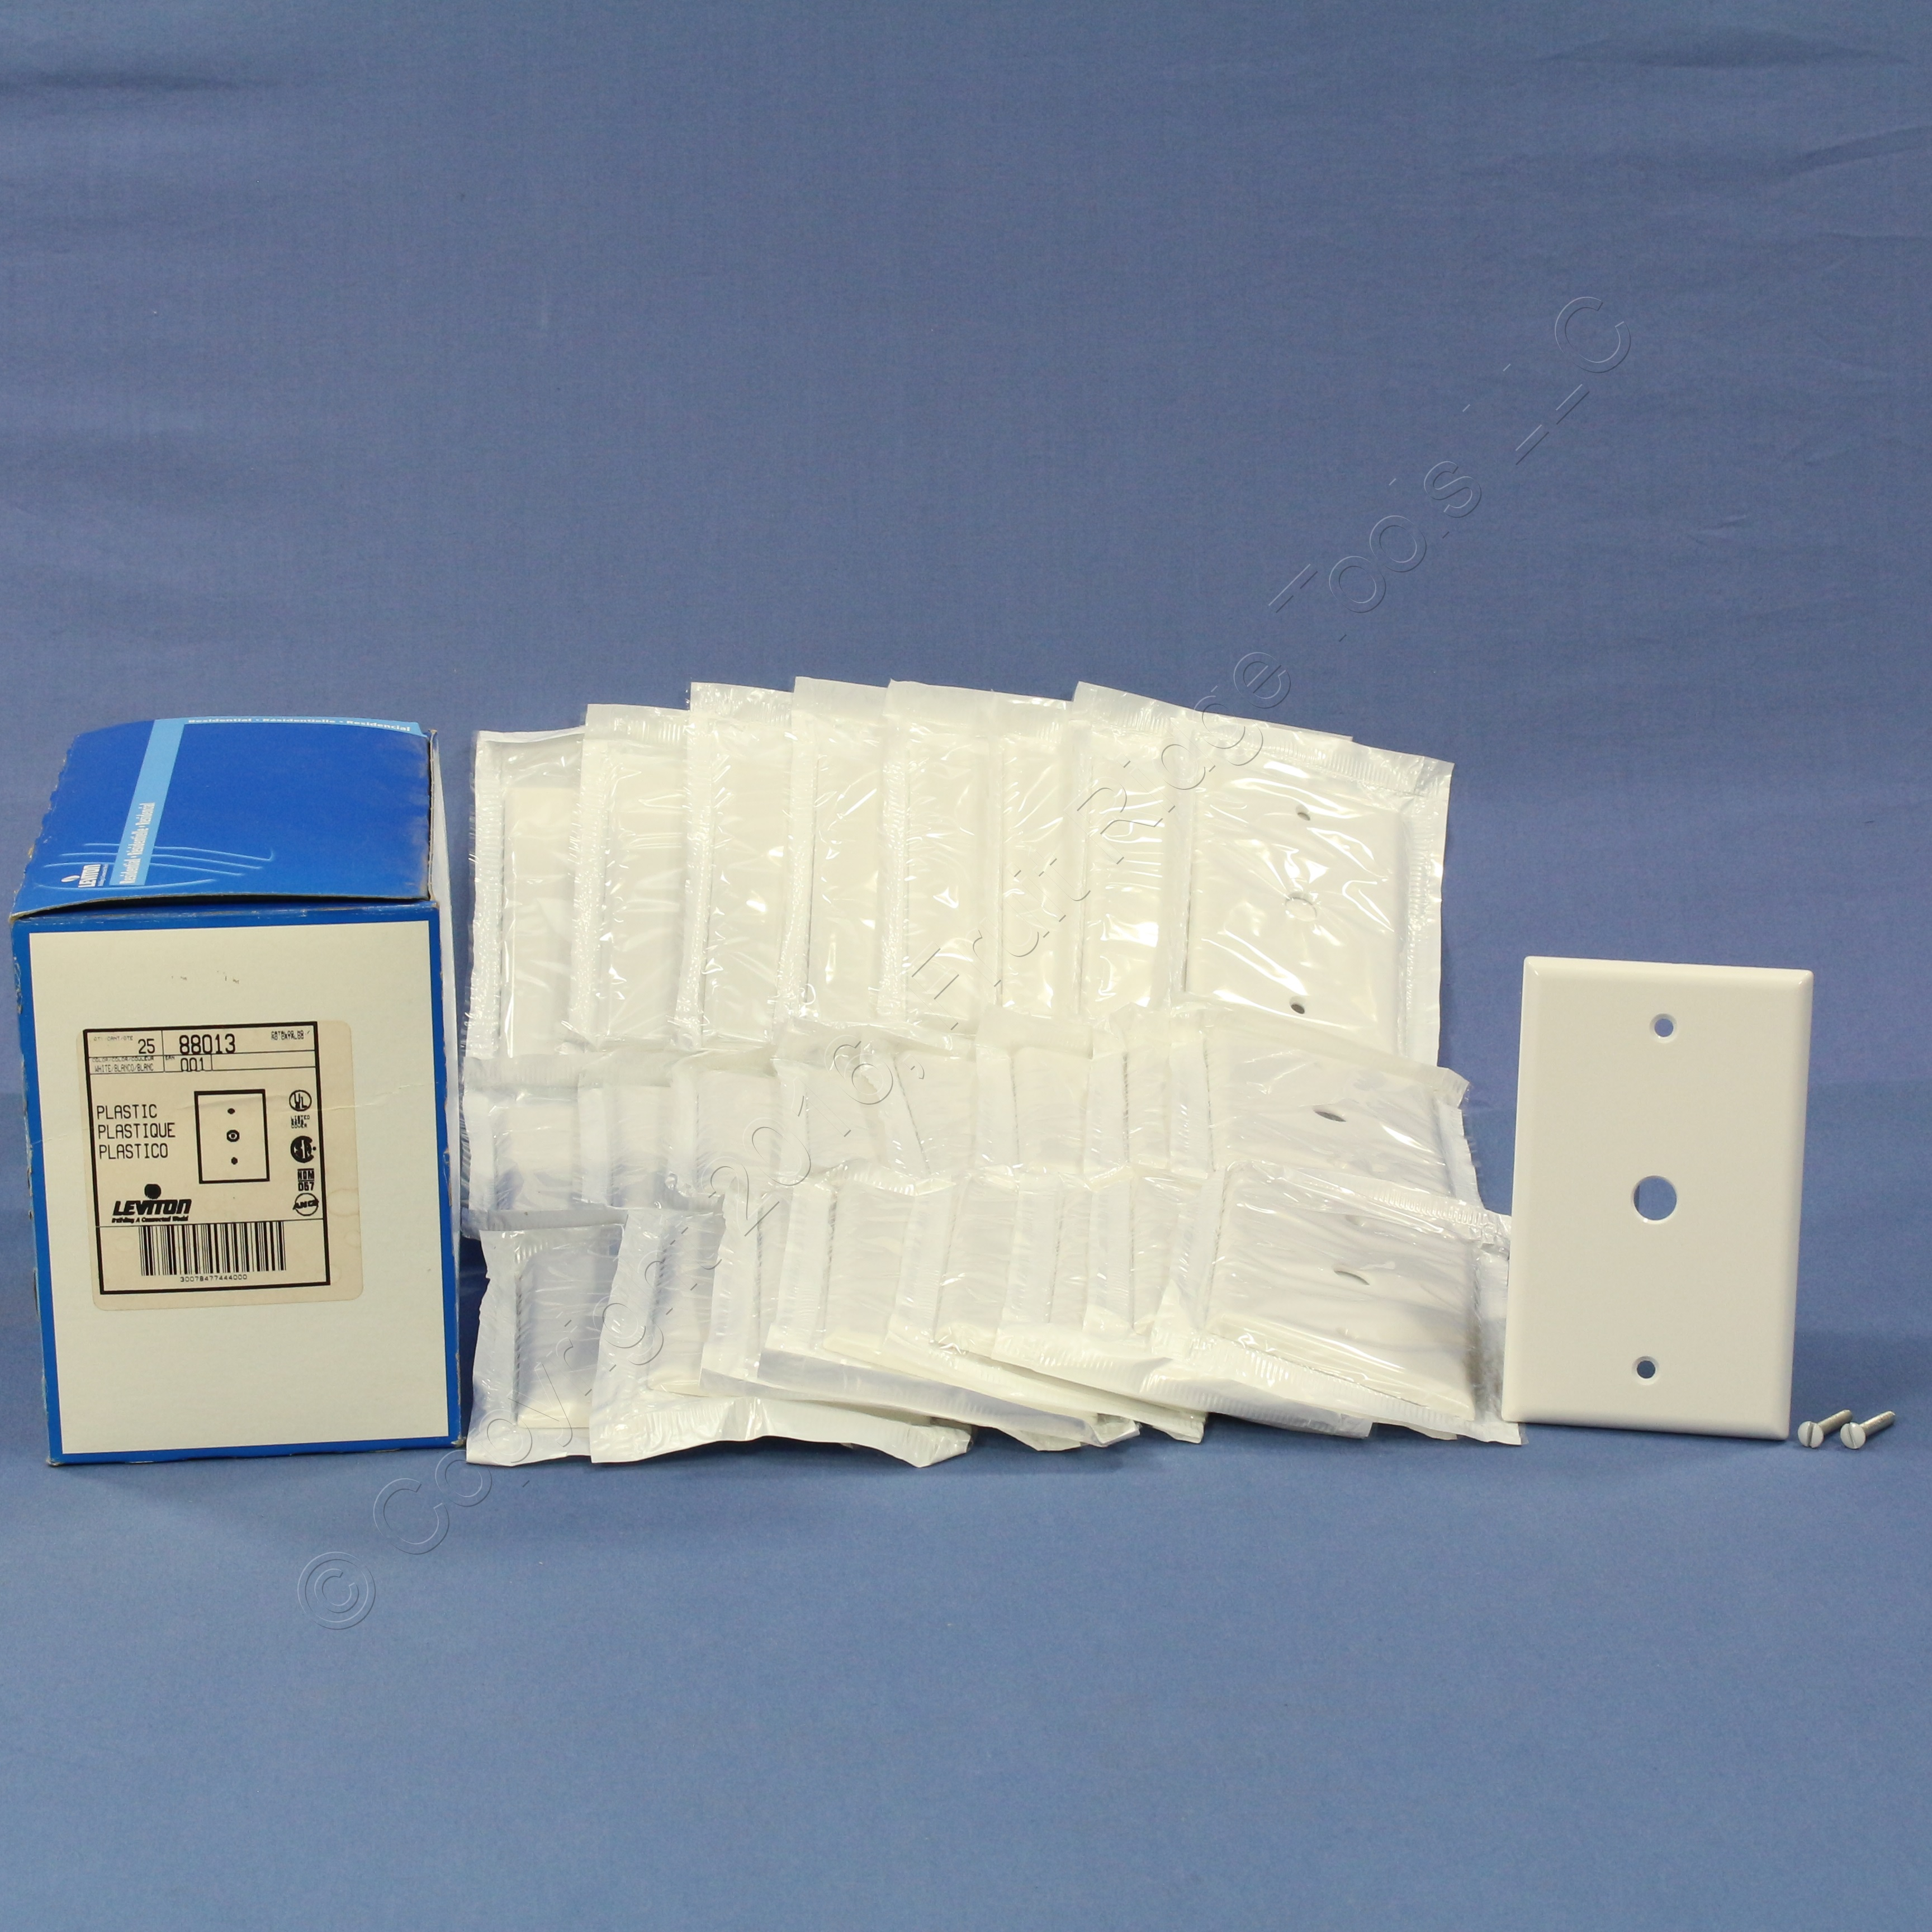 25 leviton white phone cable wallplate telephone cover plates 406 hole 88013 ebay. Black Bedroom Furniture Sets. Home Design Ideas